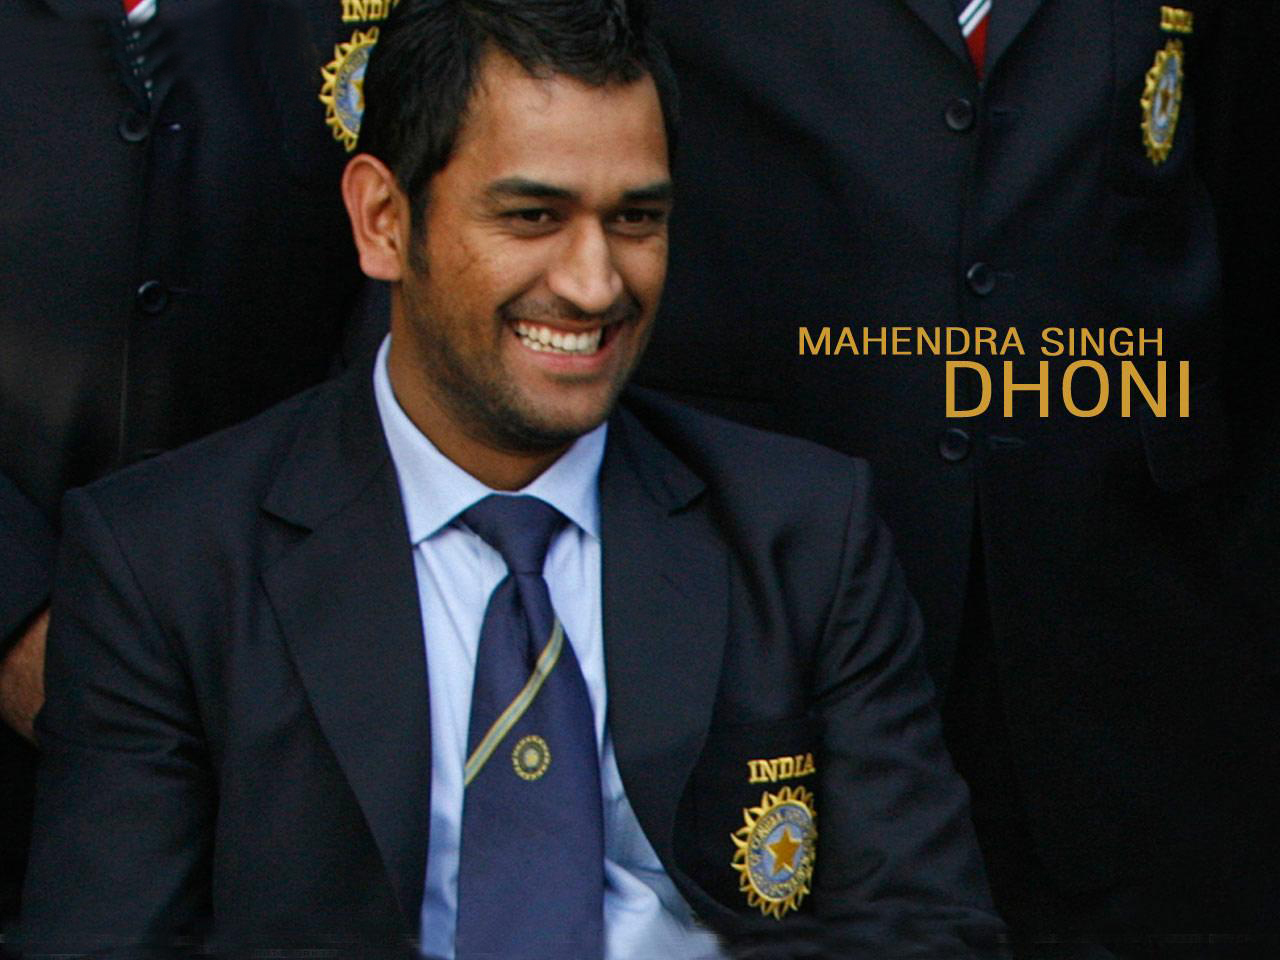 Mahendra Singh Dhoni steps down as the captain of the Indian cricket team